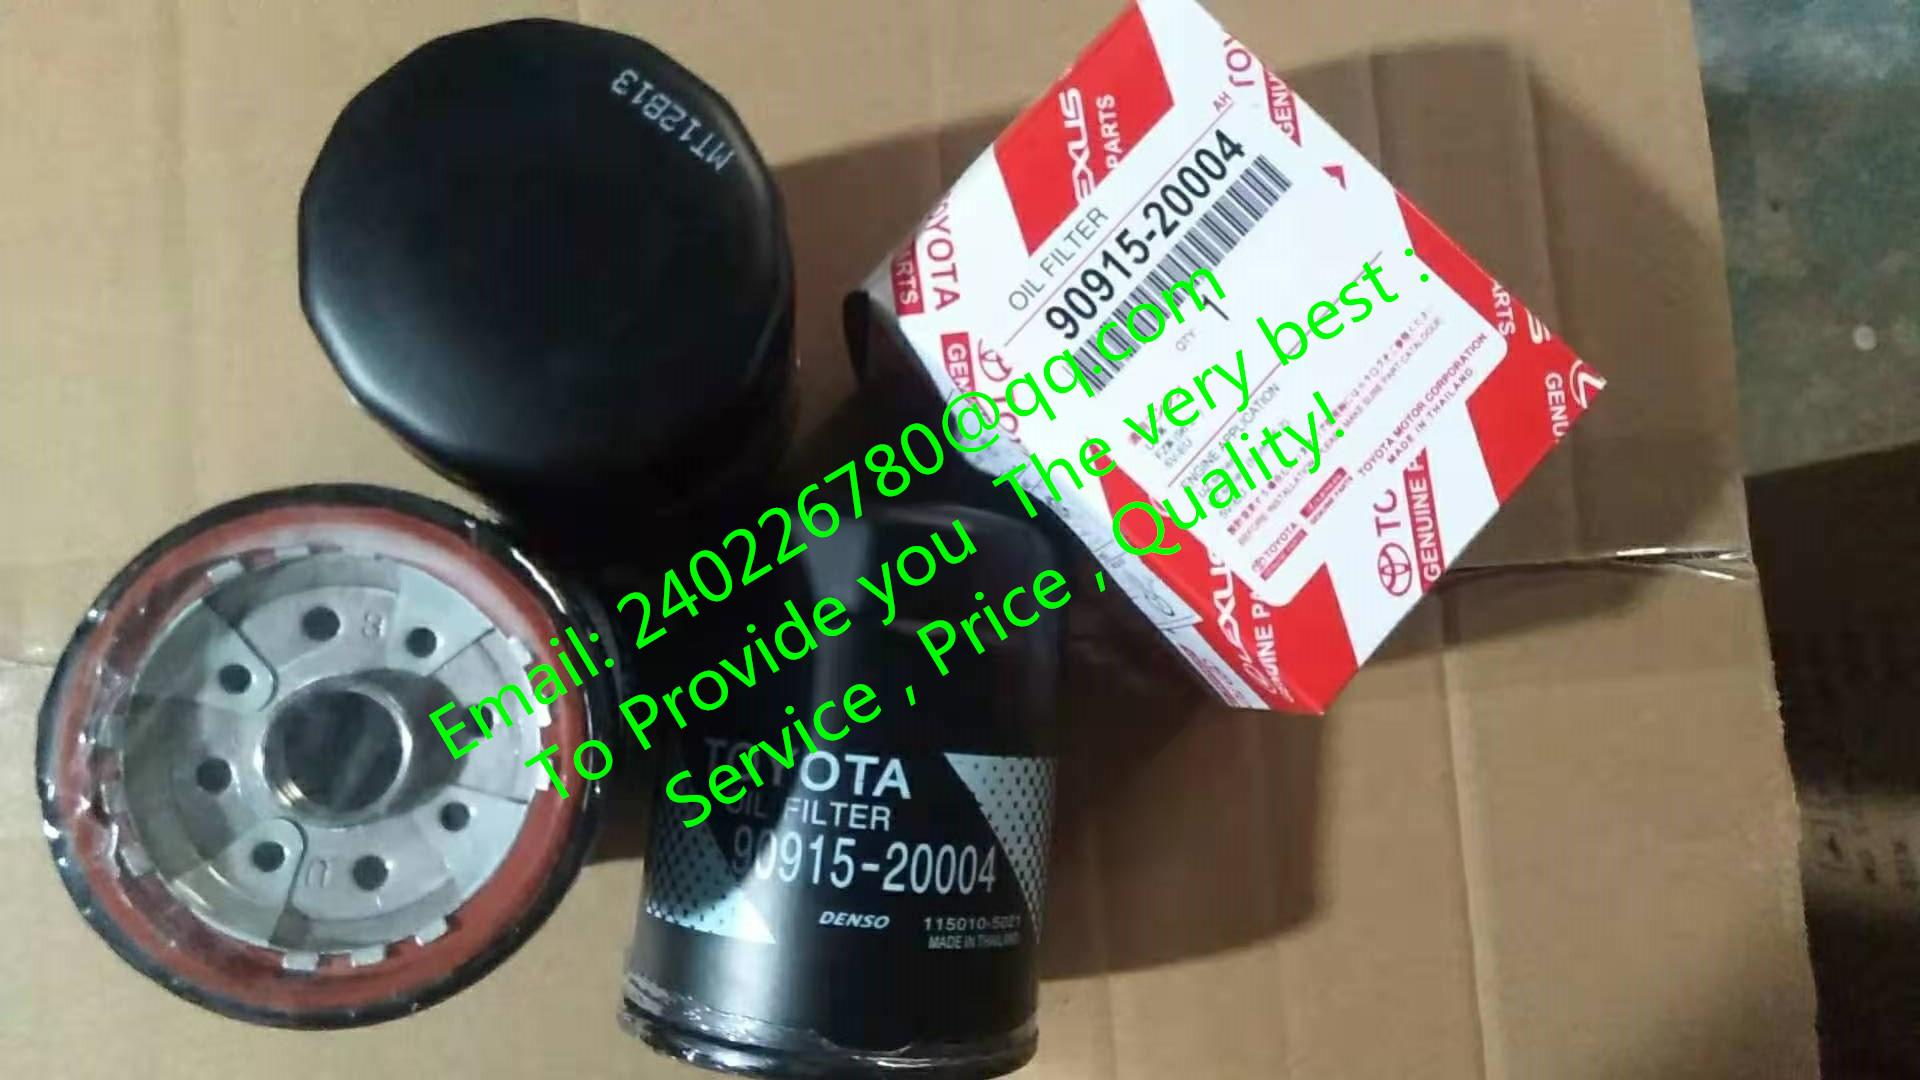 FOR TOYOTA Crown Oil Filter 90915-20004  9091520004  90915-YZZB6